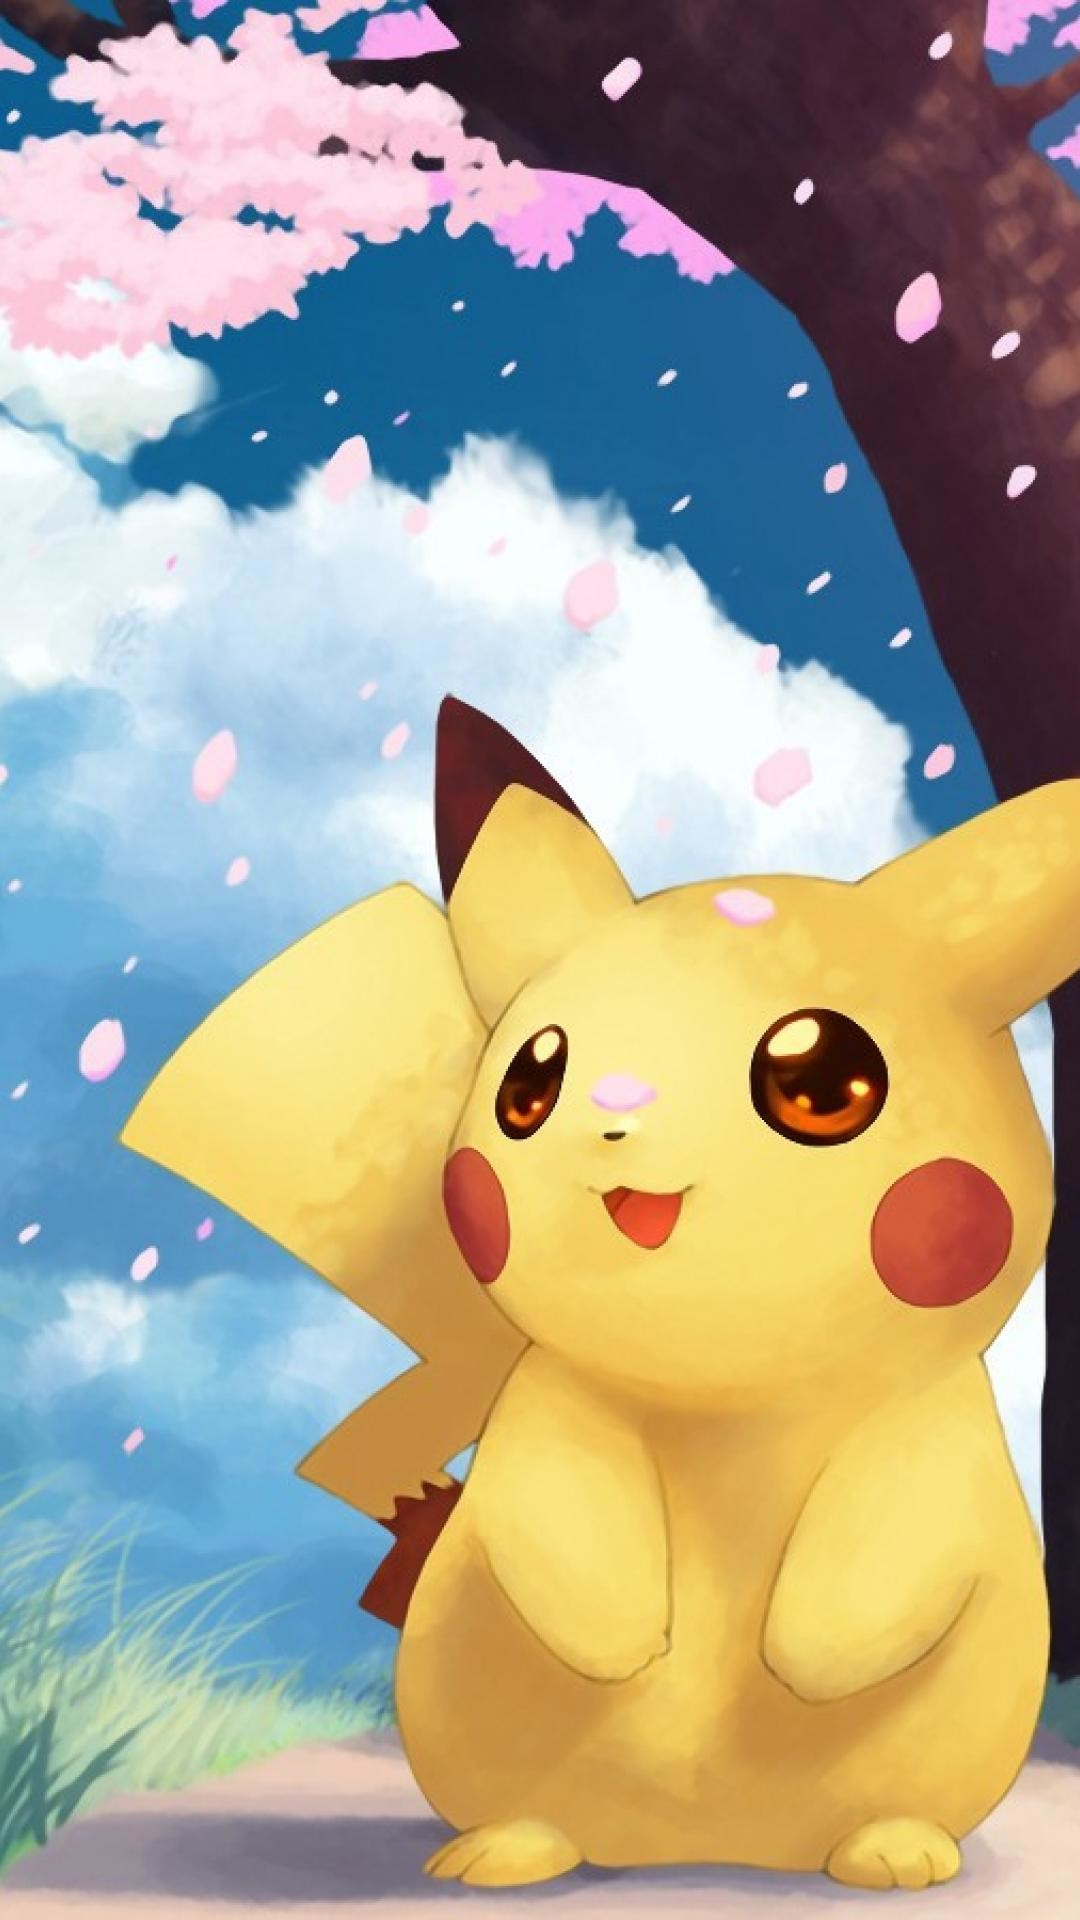 Res: 1080x1920, Adorable Pokemon wallpapers and gifs